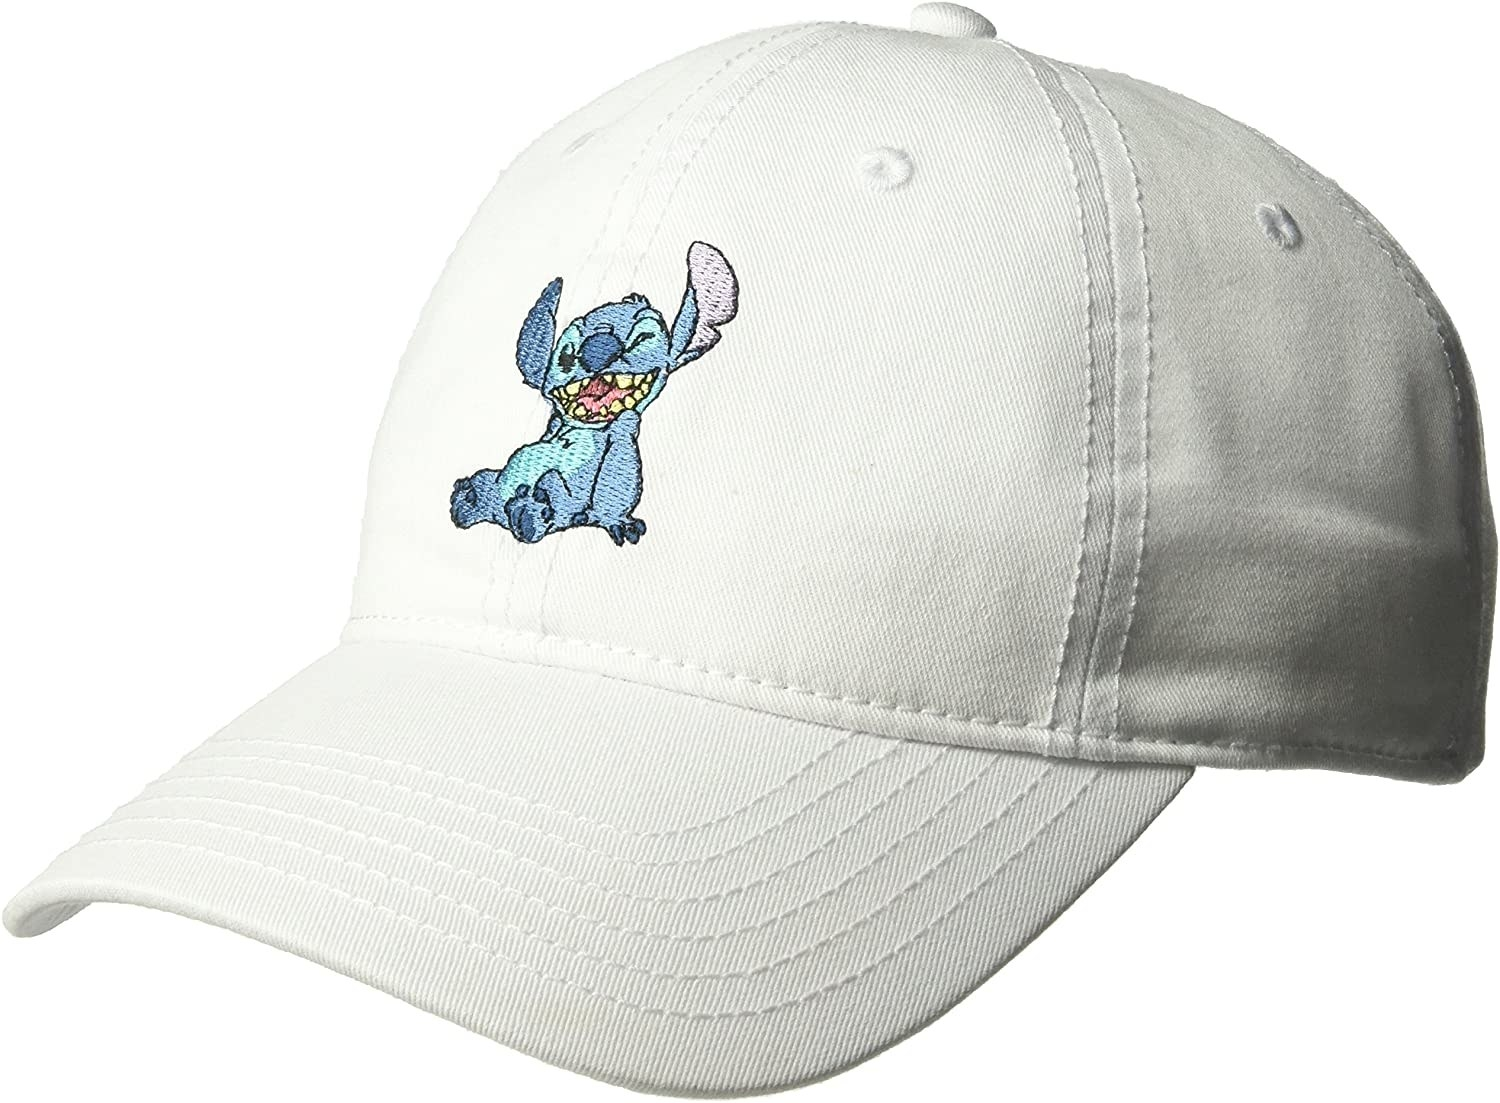 a white baseball hat with a stitch patch on the front